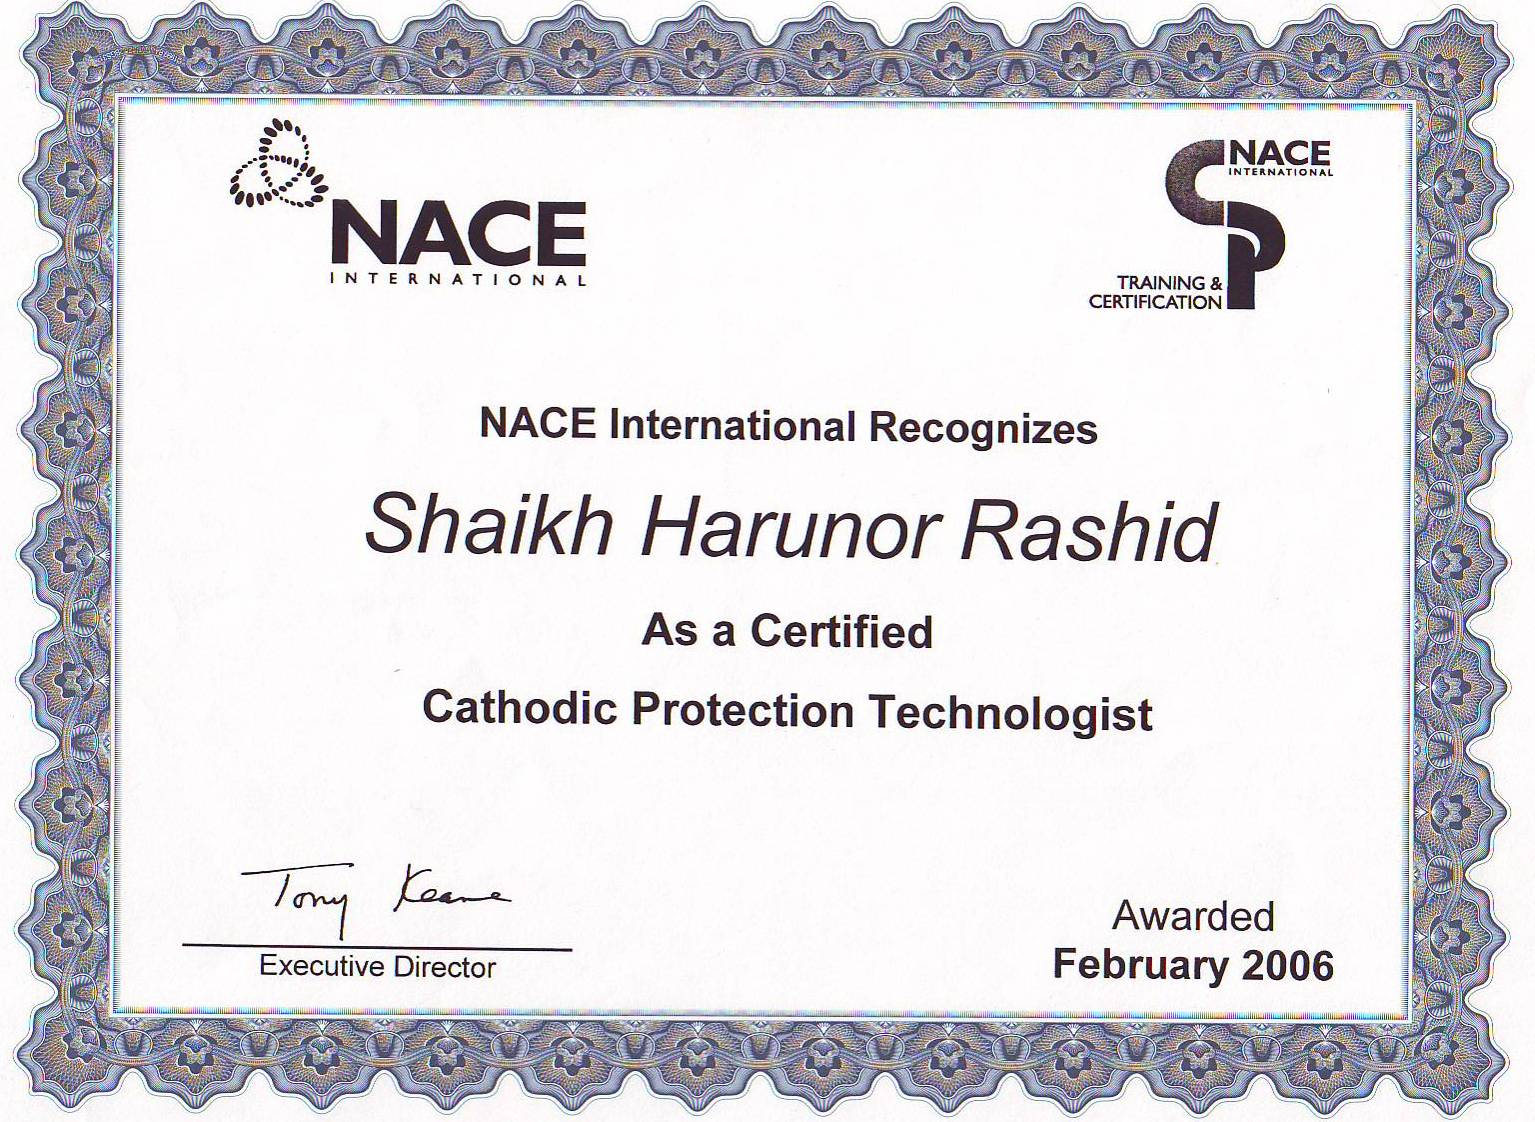 nace protection cathodic corrosion technologist certification technology inspector coating internal